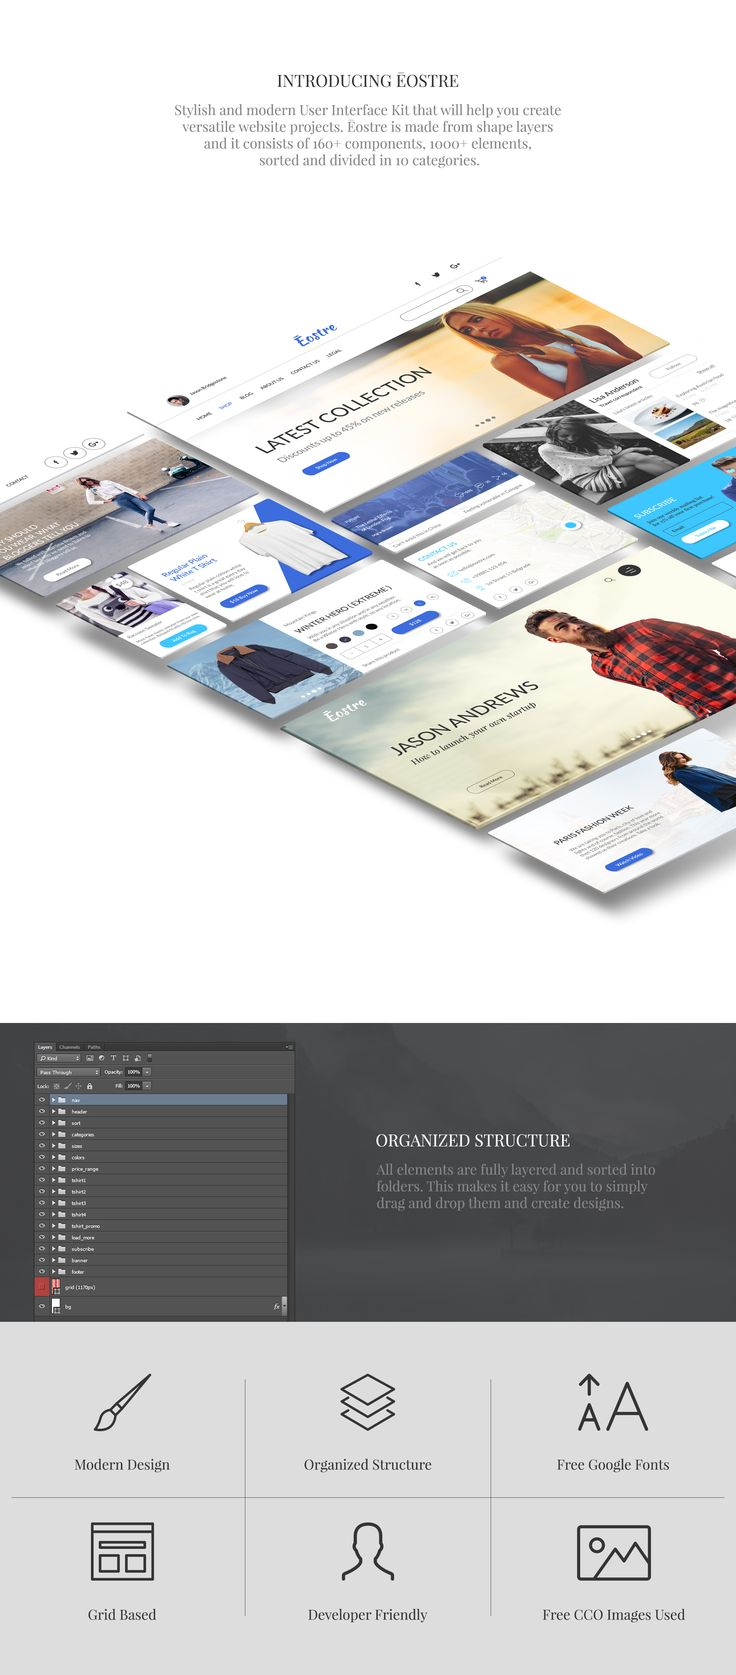 Ēostre Ui Kit   #web #website #ui #uikit #design